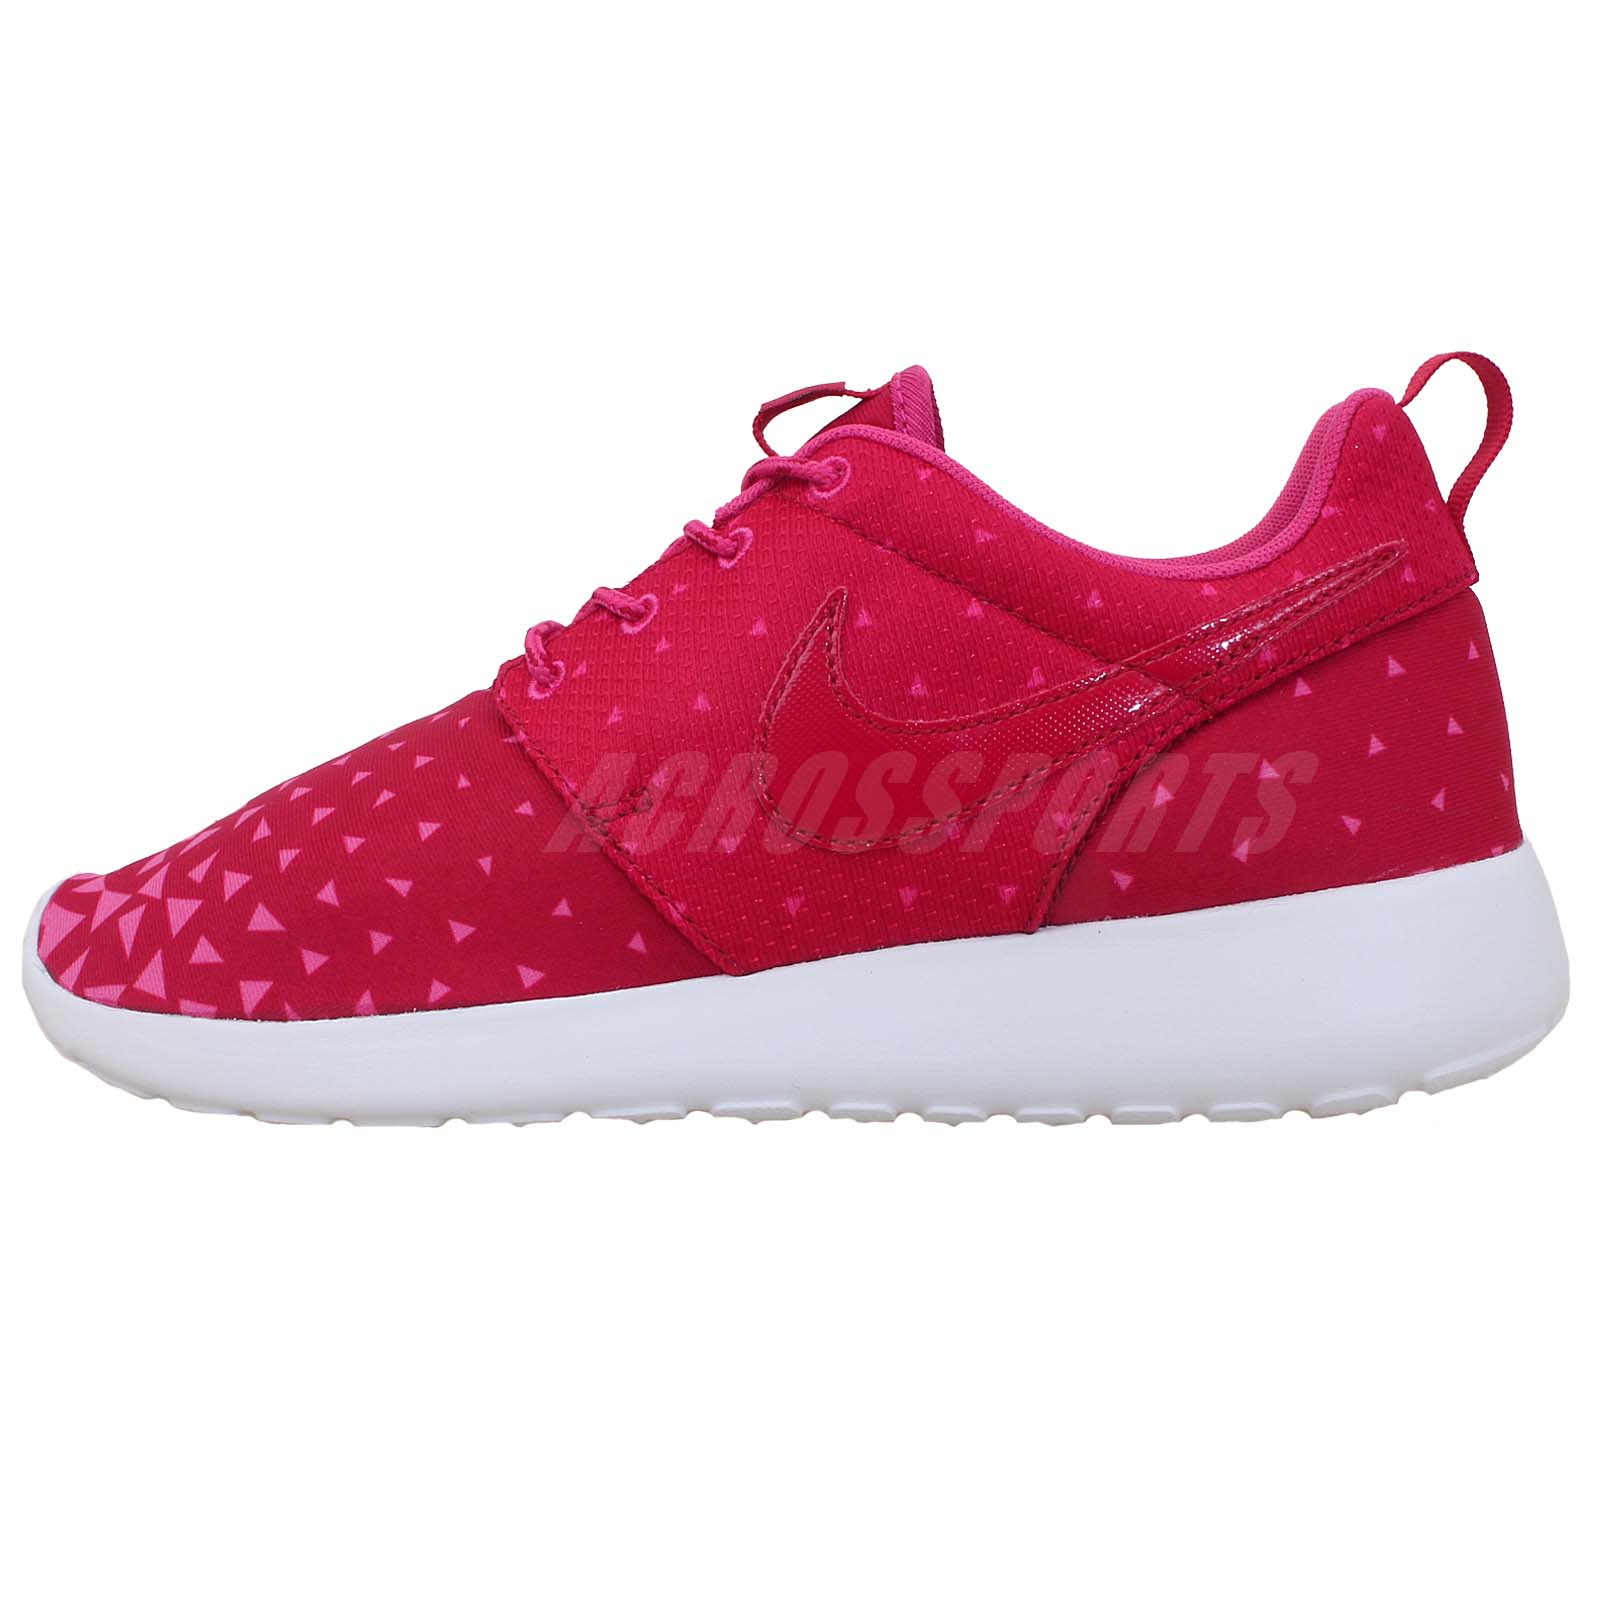 Lastest Nike Shoes Girls 2014 Thehoneycombimaging.co.uk